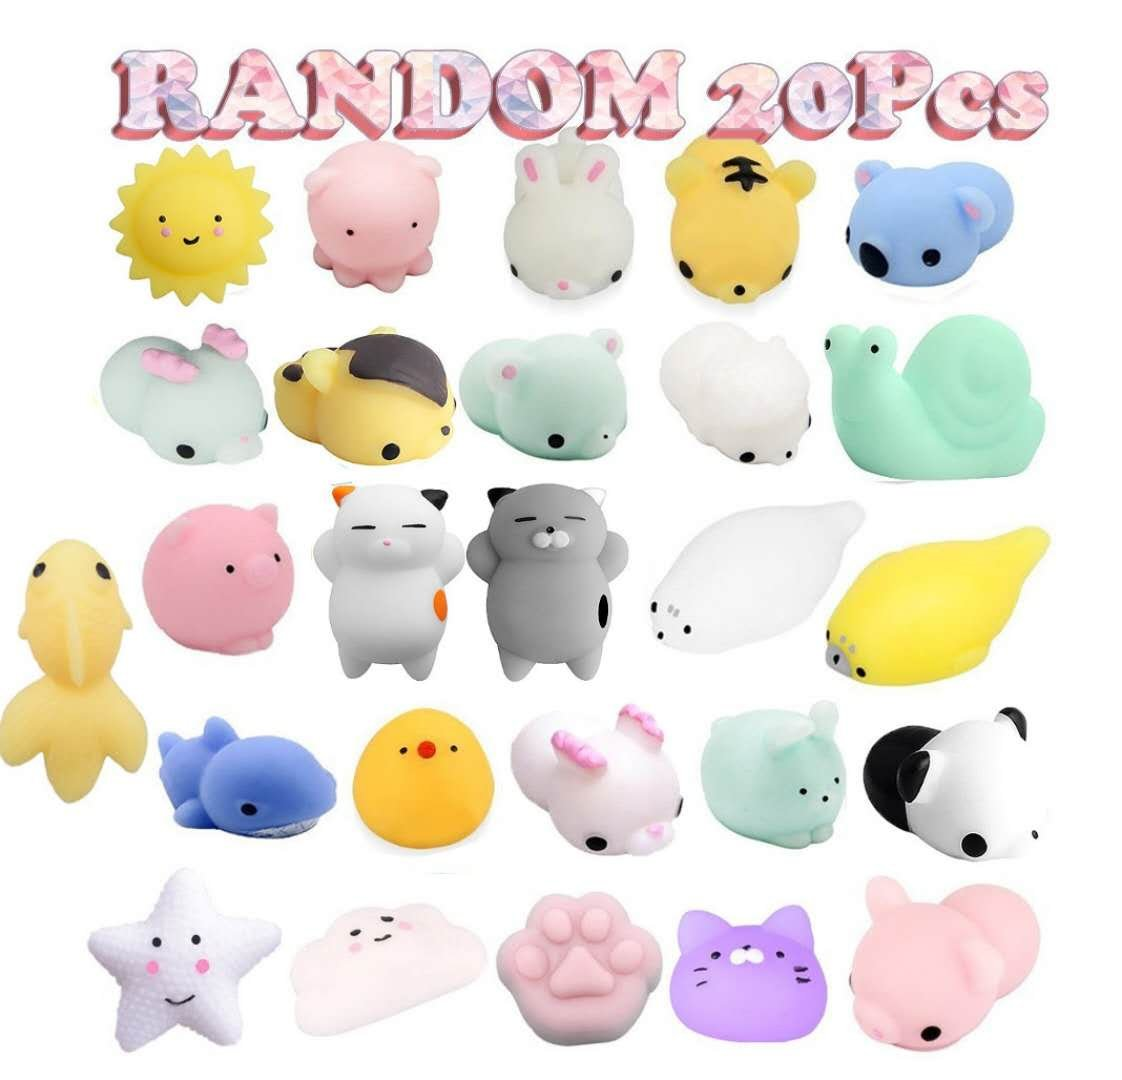 Birthday Party Favors Pack for Kids - 20 Pcs Mochi Squishies Bulk Toy Assortment for Goodie Bags Fillers Pinata Prizes Classroom Rewards Carnival Stuffers Easter Egg